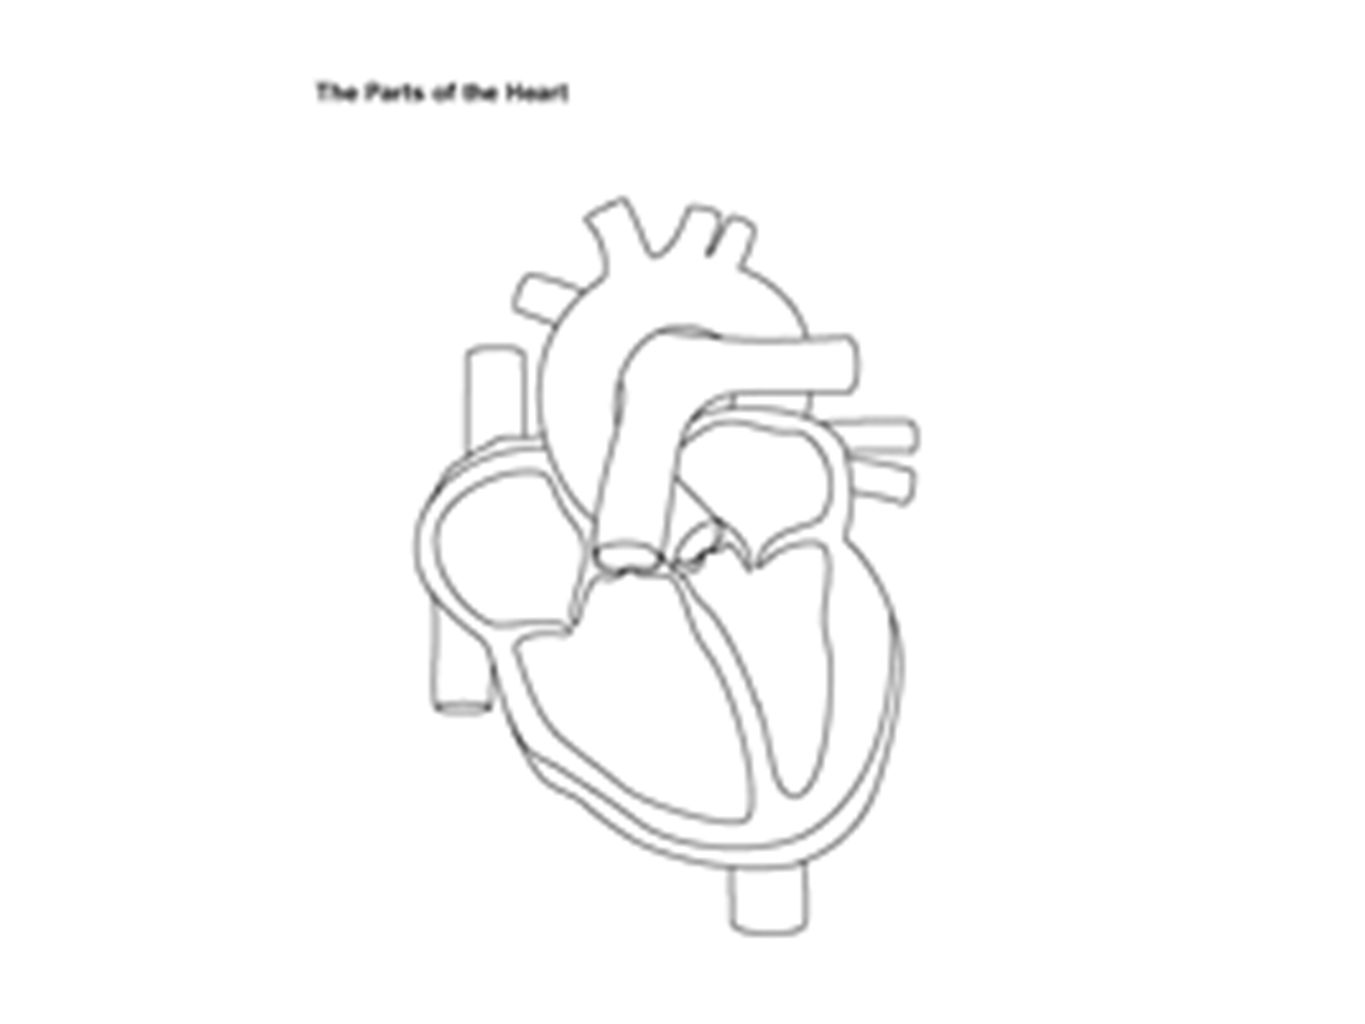 B2 Topic 3 Starter Stick In The Heart Diagram Ppt Video Online